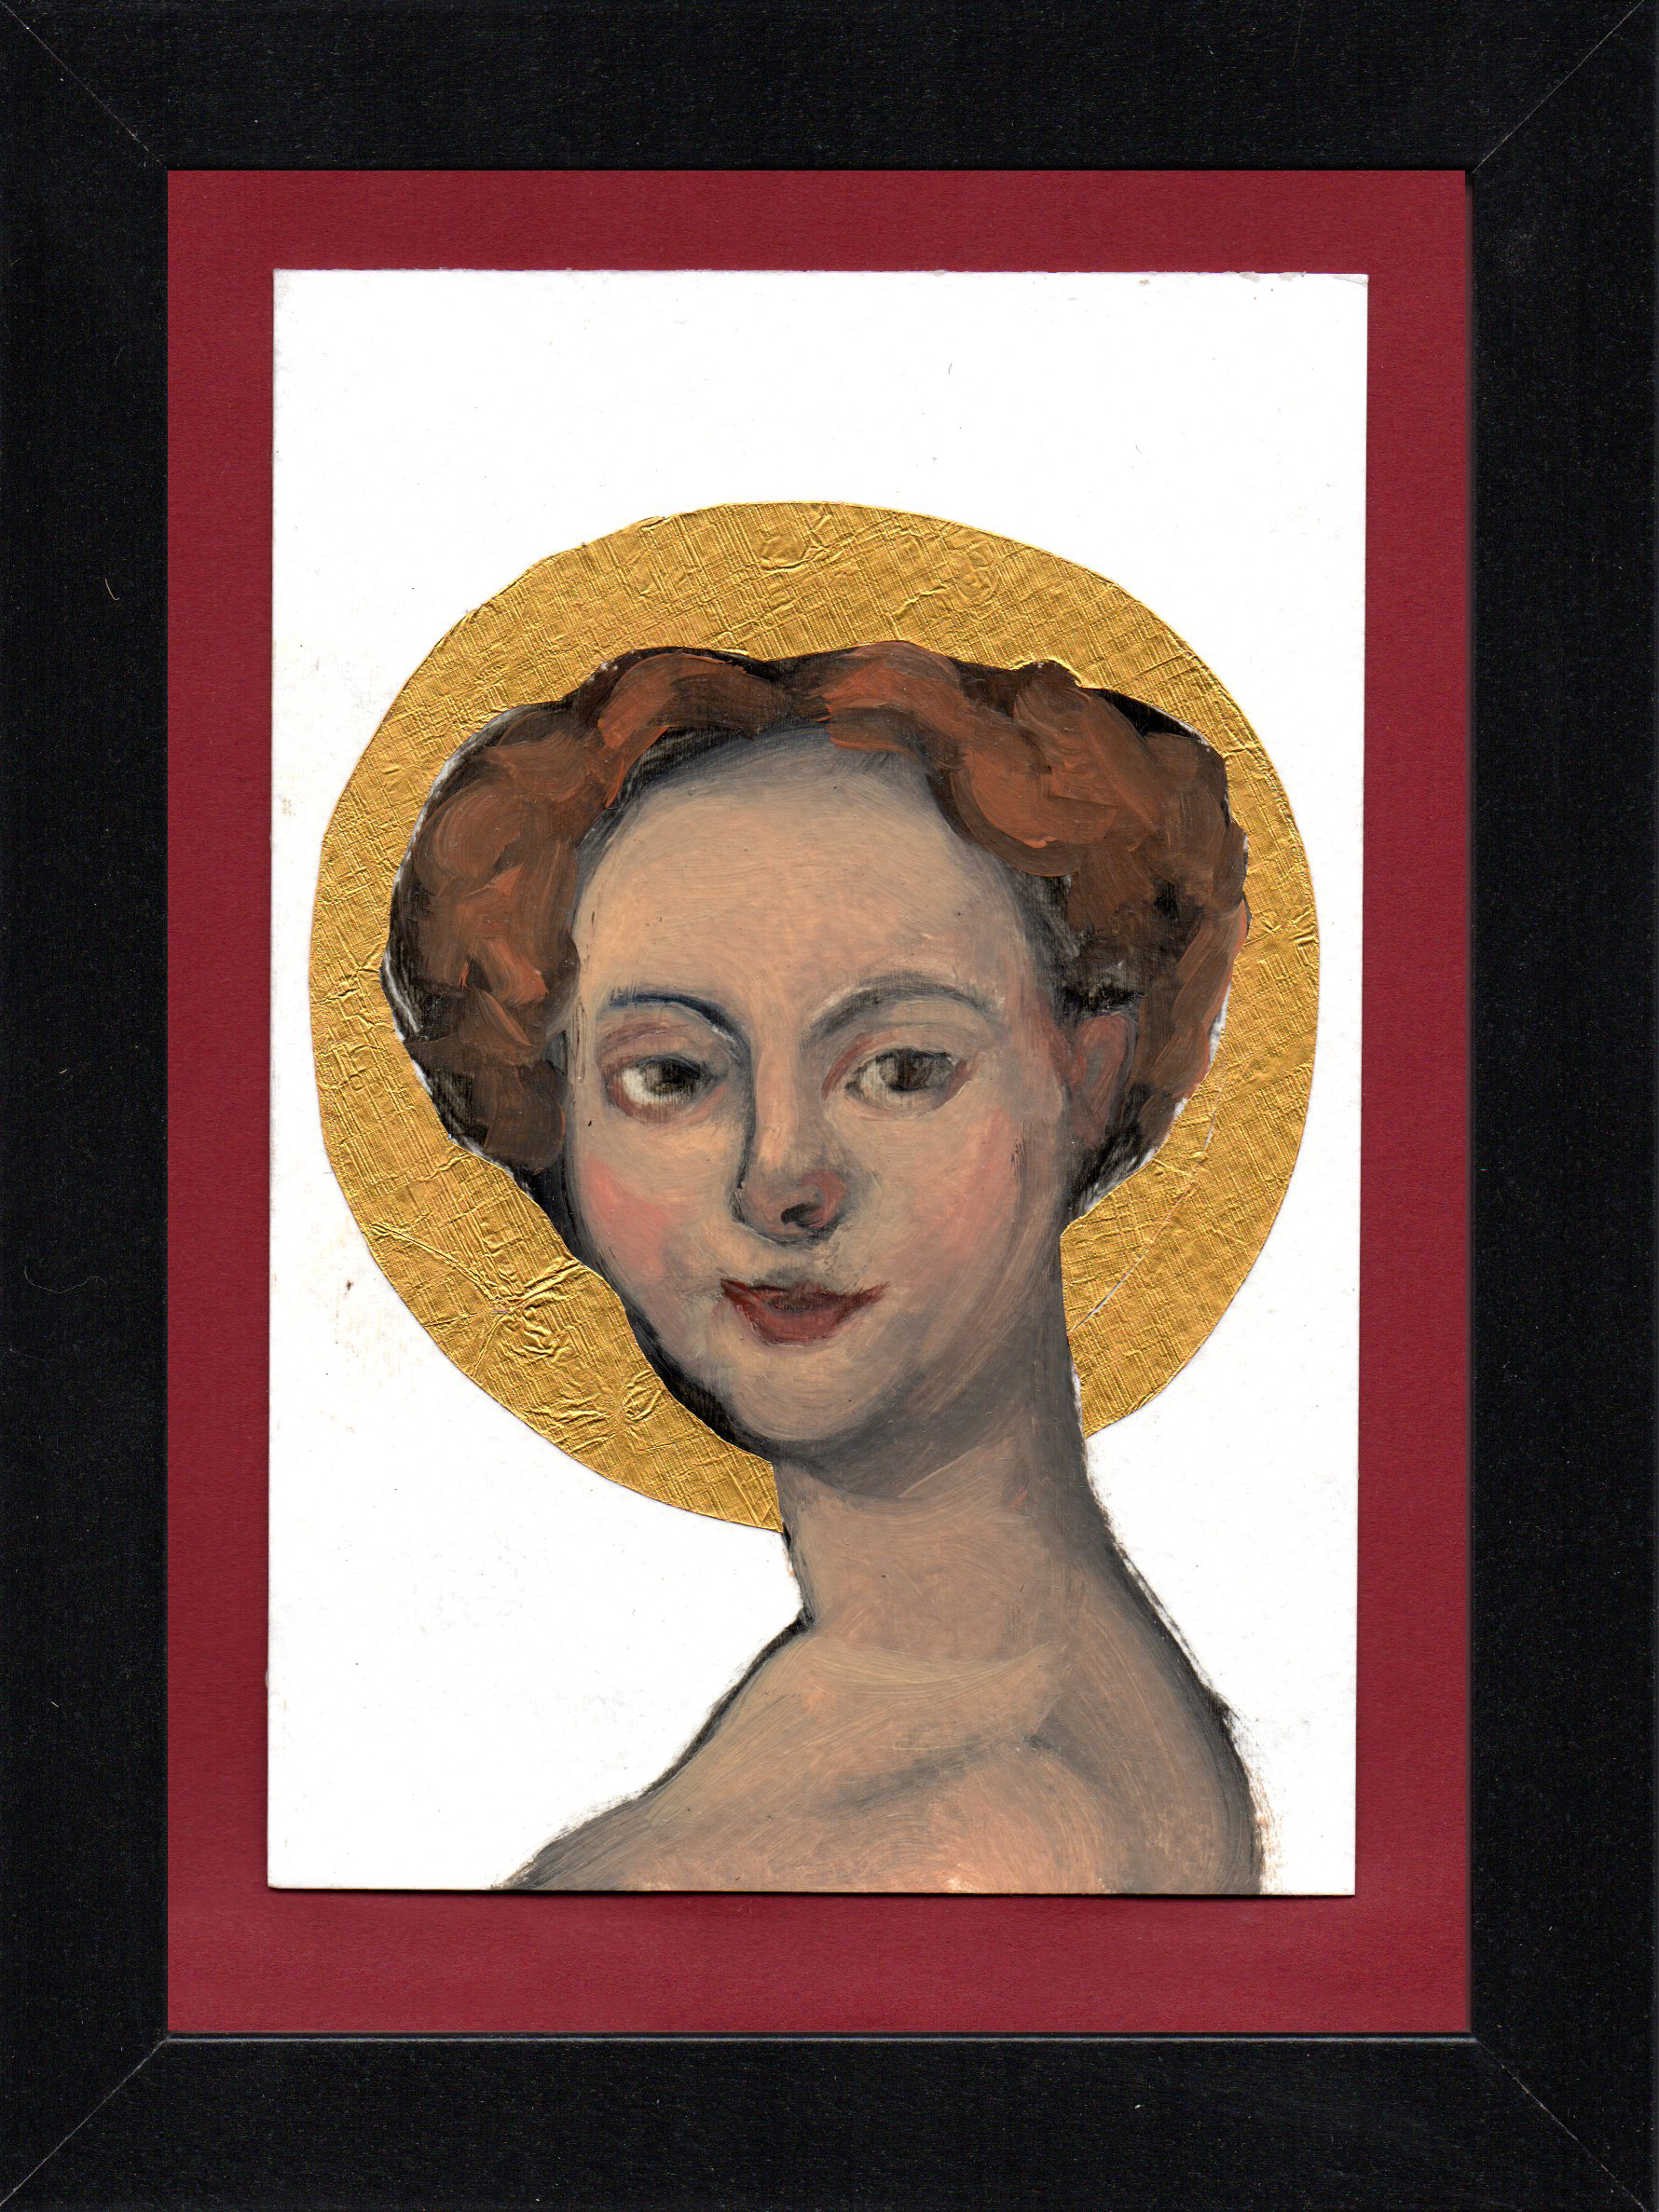 "Postcard Saint 11, oil & gold foil on paper 10.5 x 15 cm (4"" x 6""), 2016"